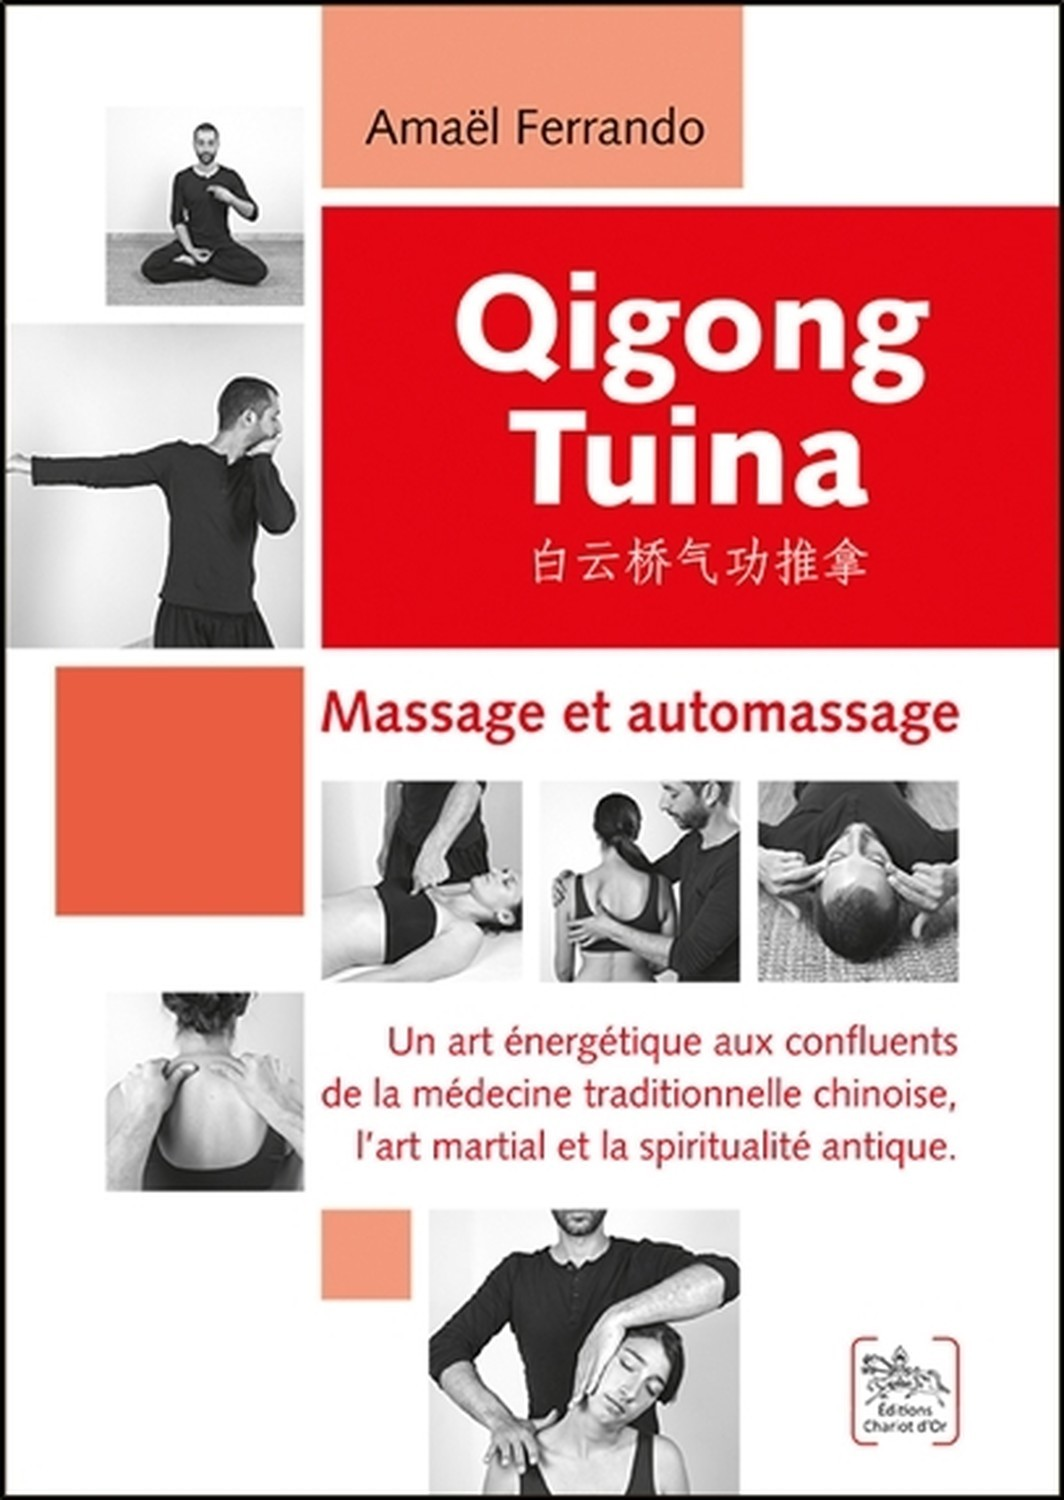 QIGONG TUINA - MASSAGE ET AUTOMASSAGE